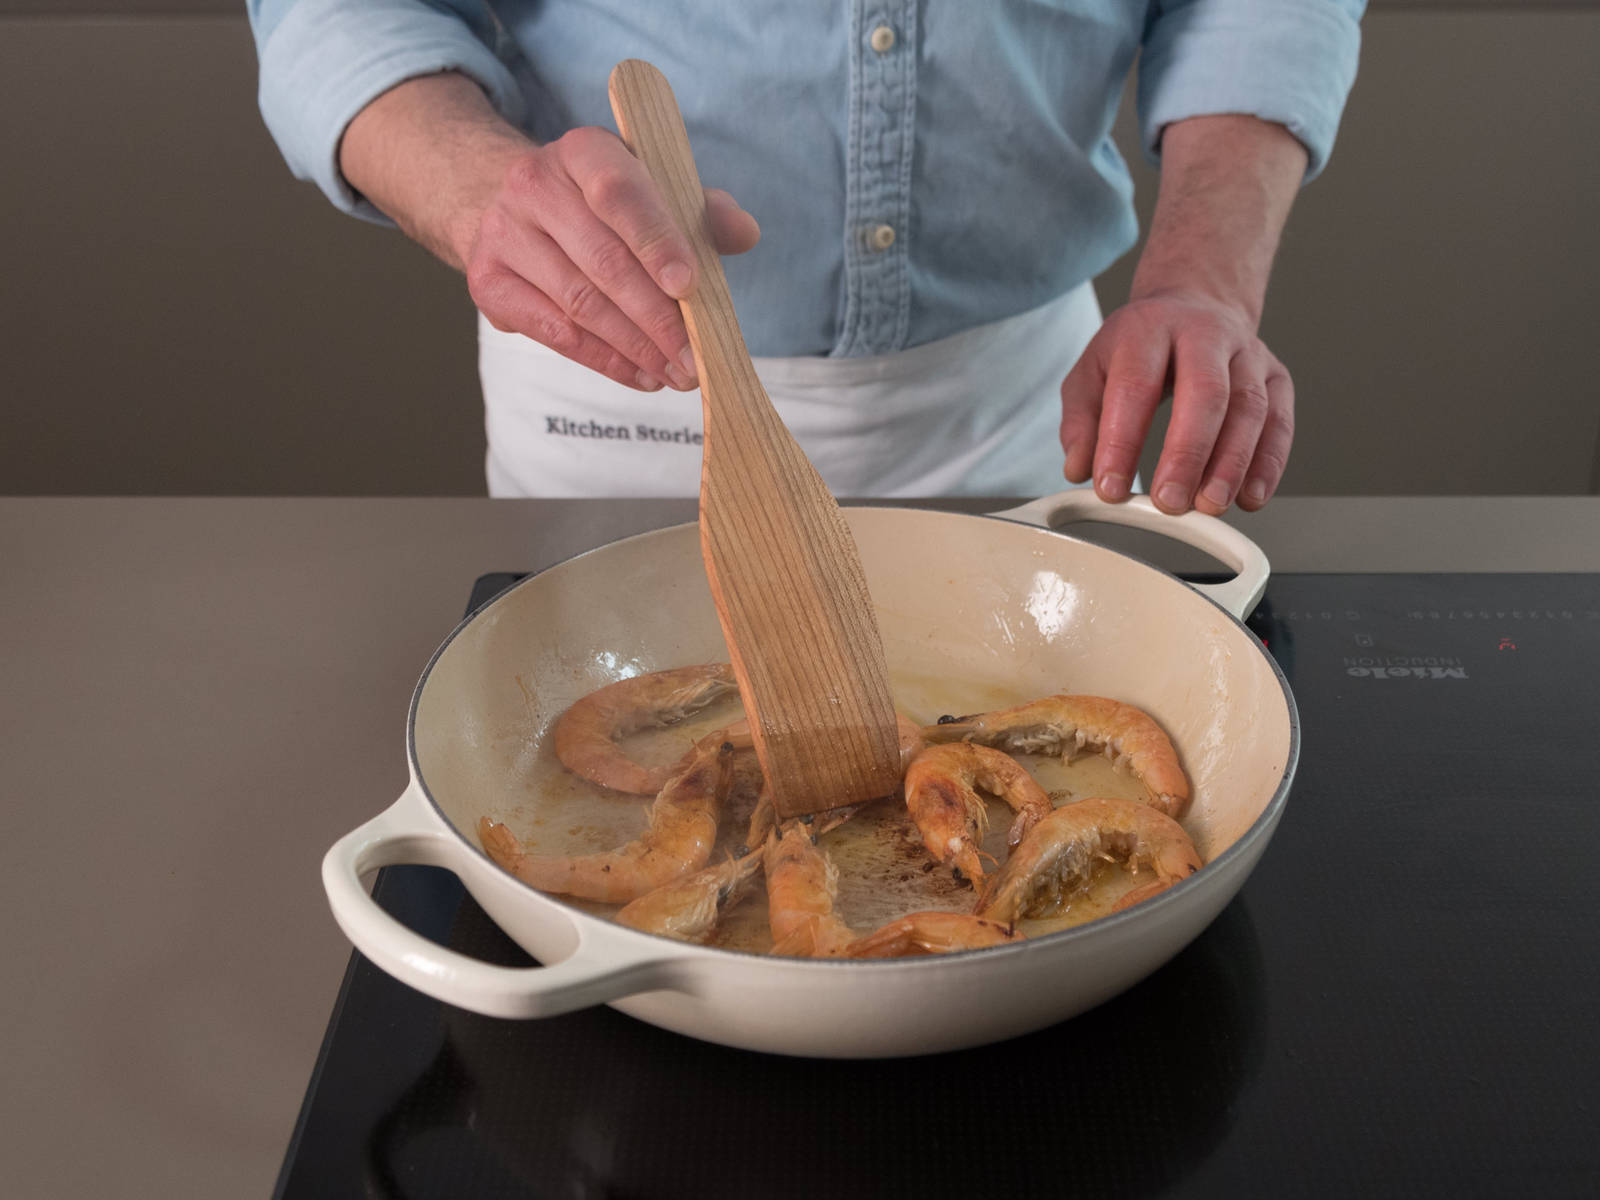 Heat some oil in a large heavy-bottomed pan. Add shrimp and squid and fry for approx. 5 min. Afterwards, take them out and set side.